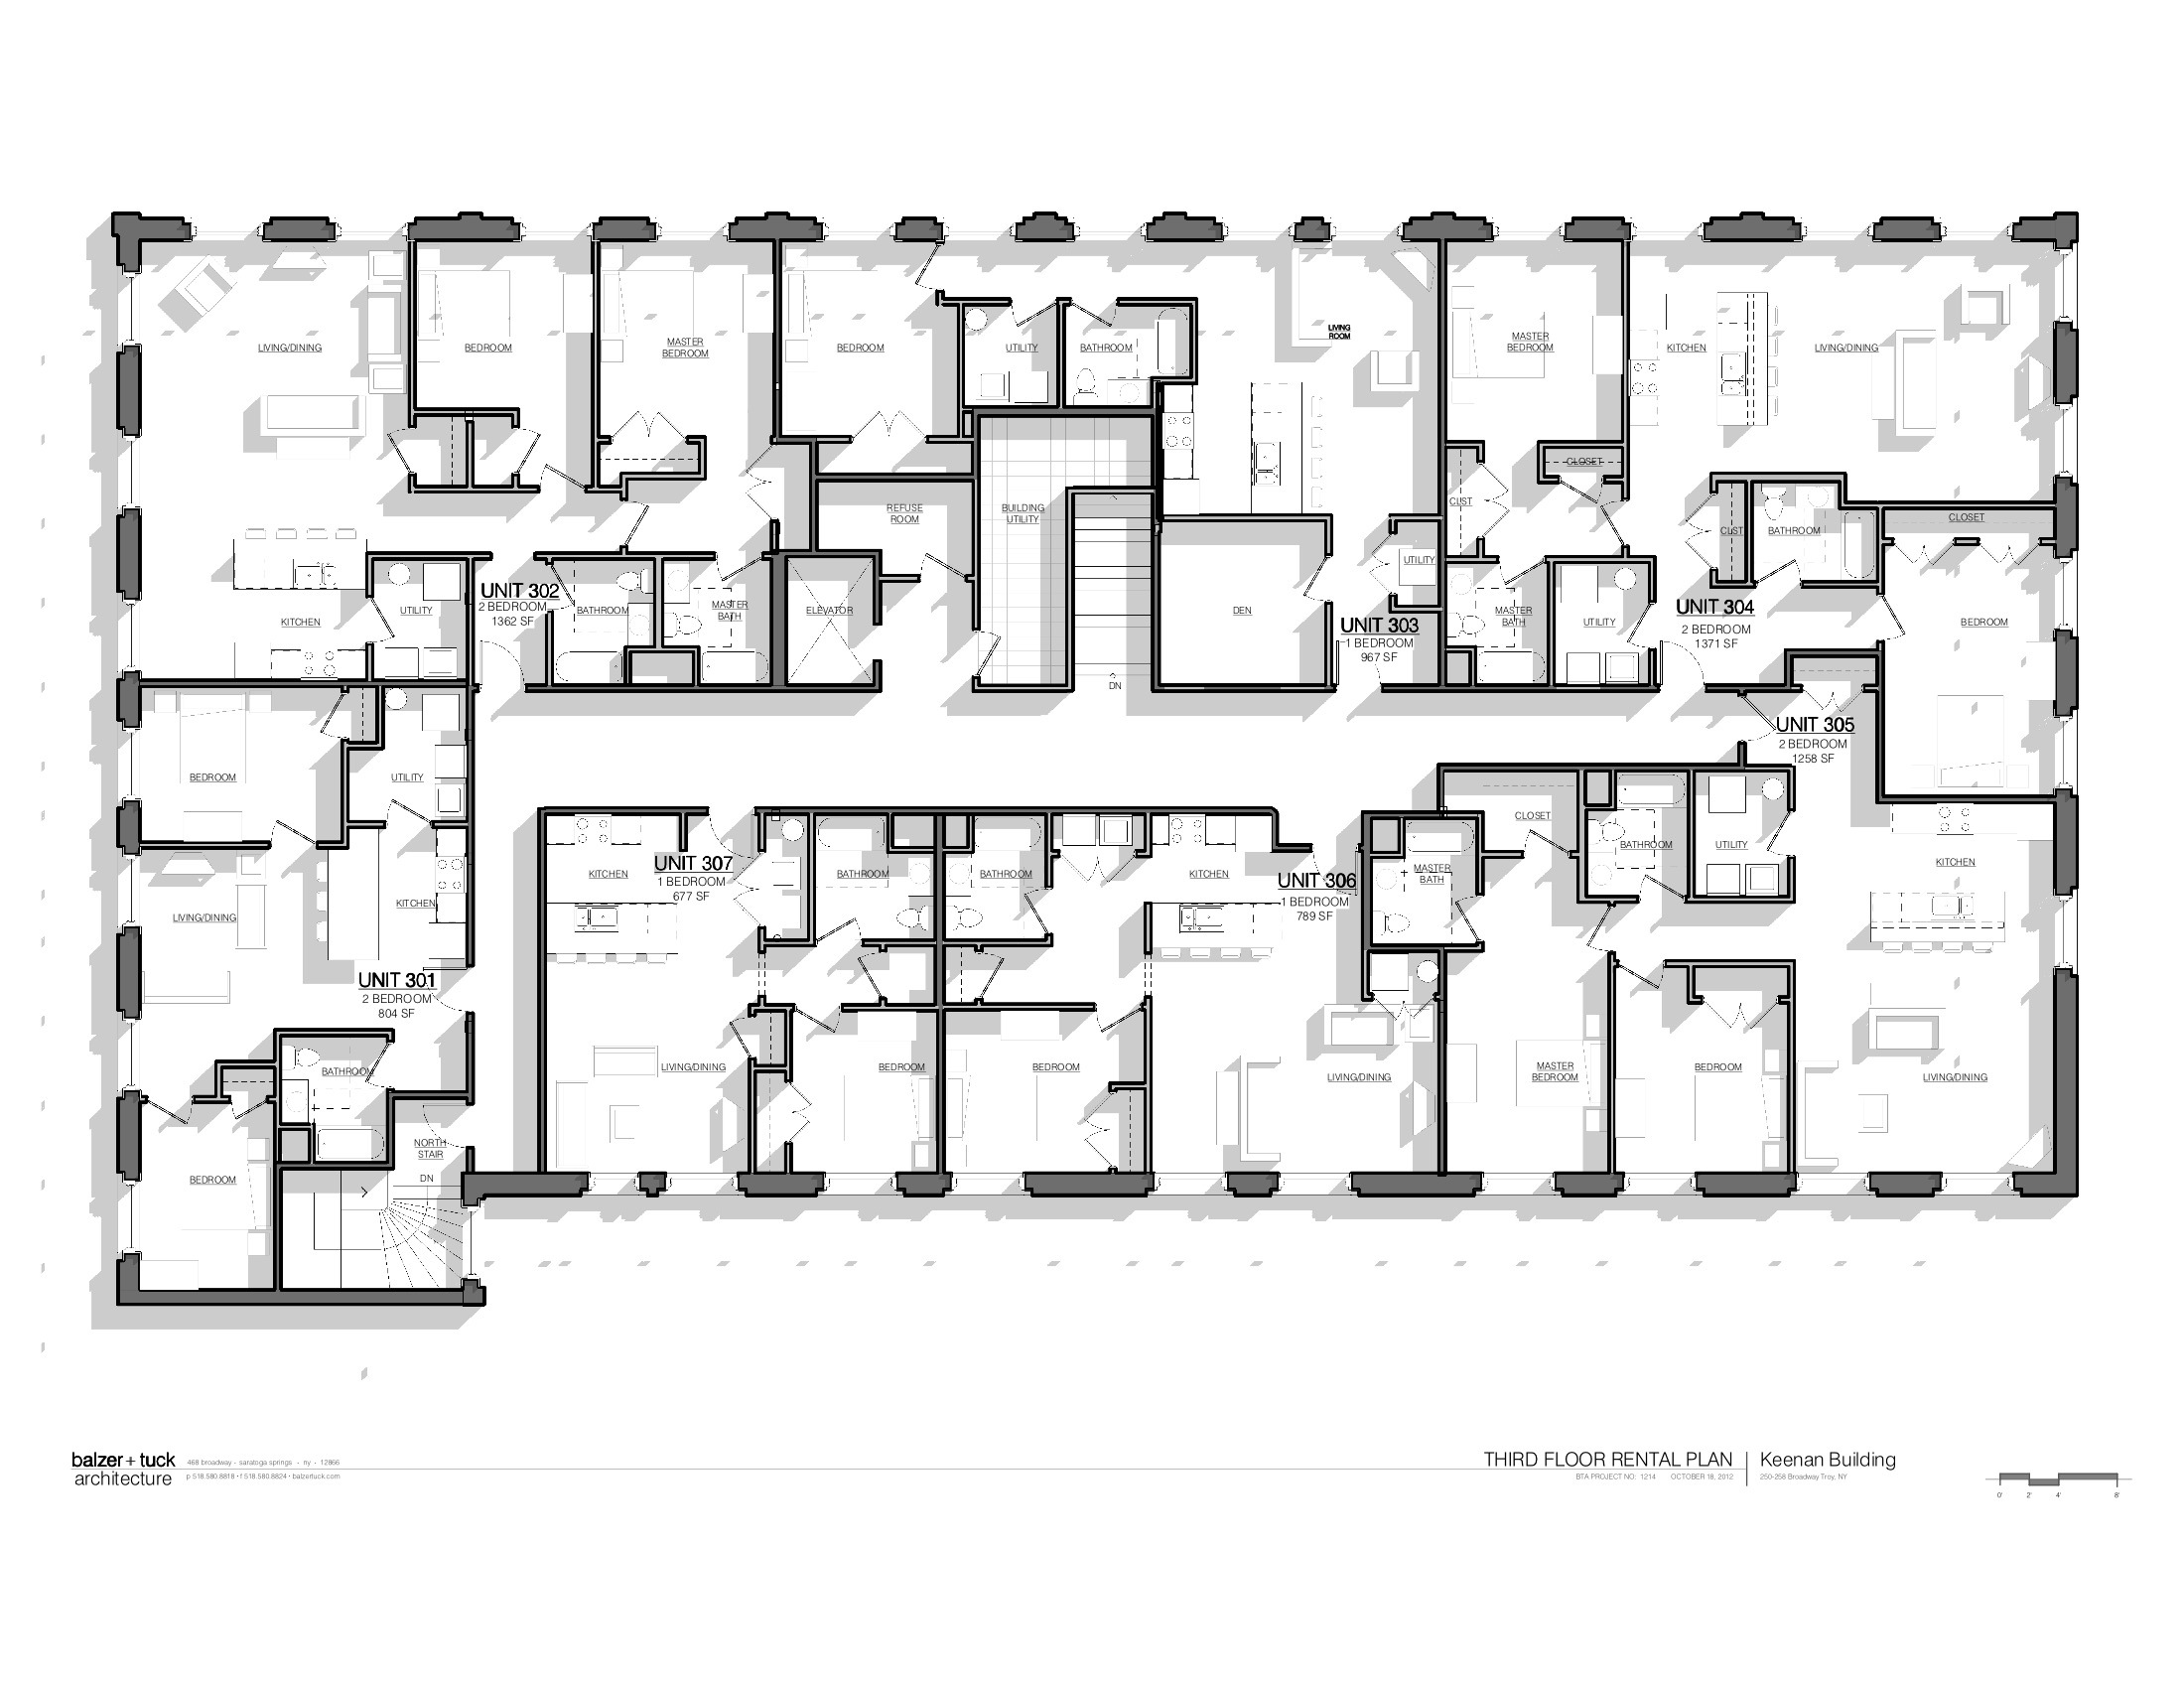 Keenan building floor plans troy new york for Floor plans manhattan apartment buildings